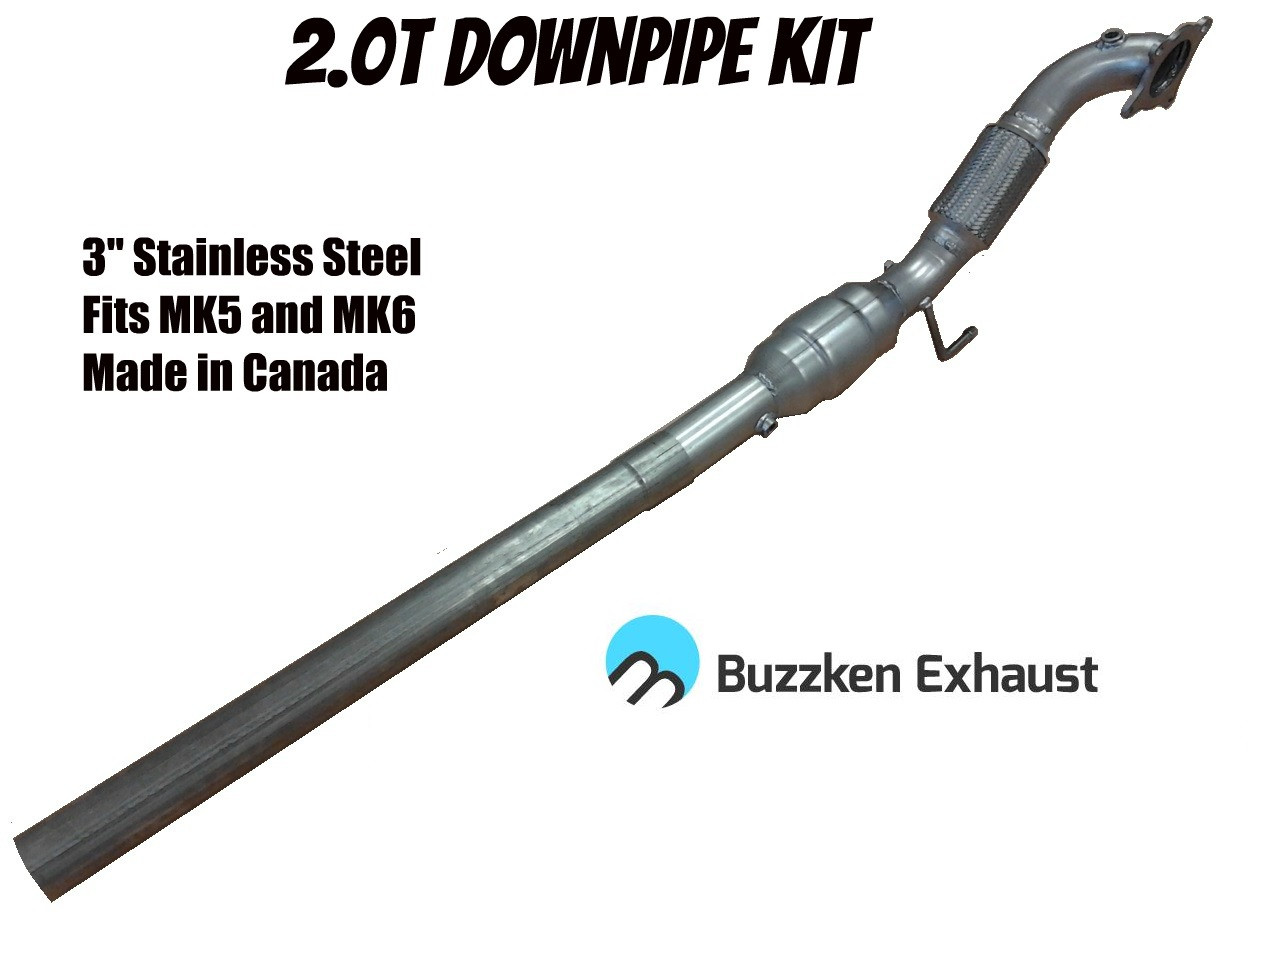 "3"" Downpipe for MK5/6 - 2.0T (2.0T-DP-Buzz)"